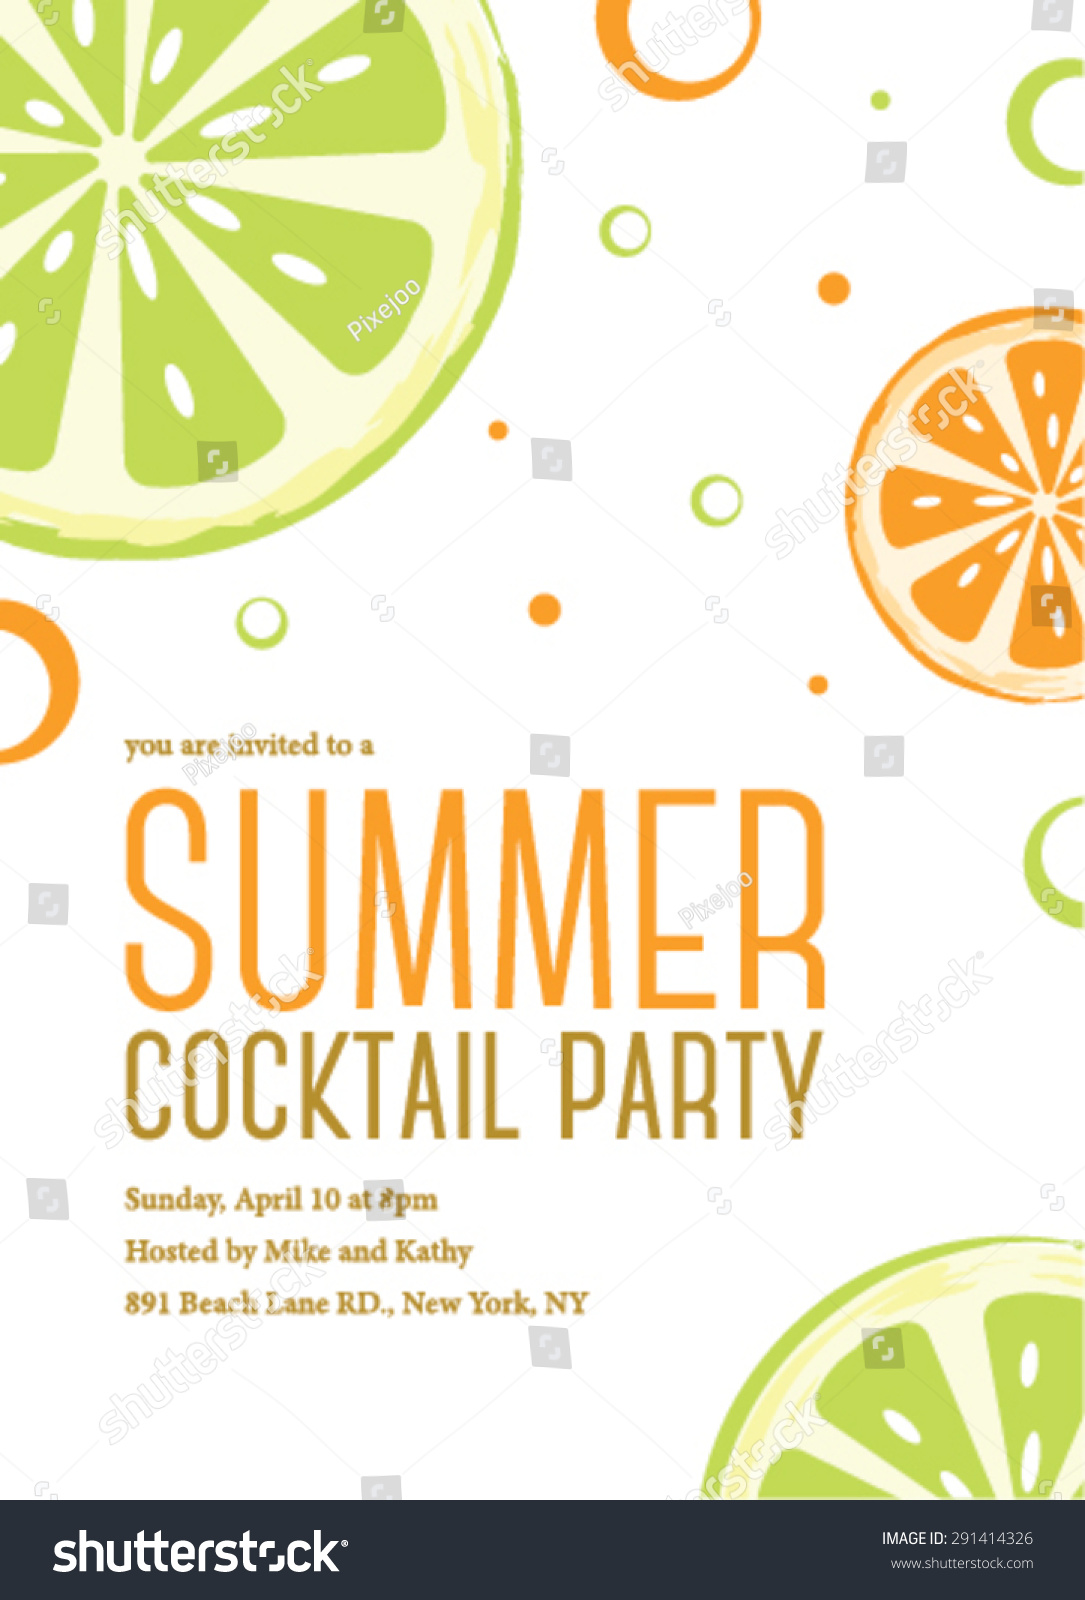 summer cocktail party invitation template stock vector 291414326 summer cocktail party invitation template